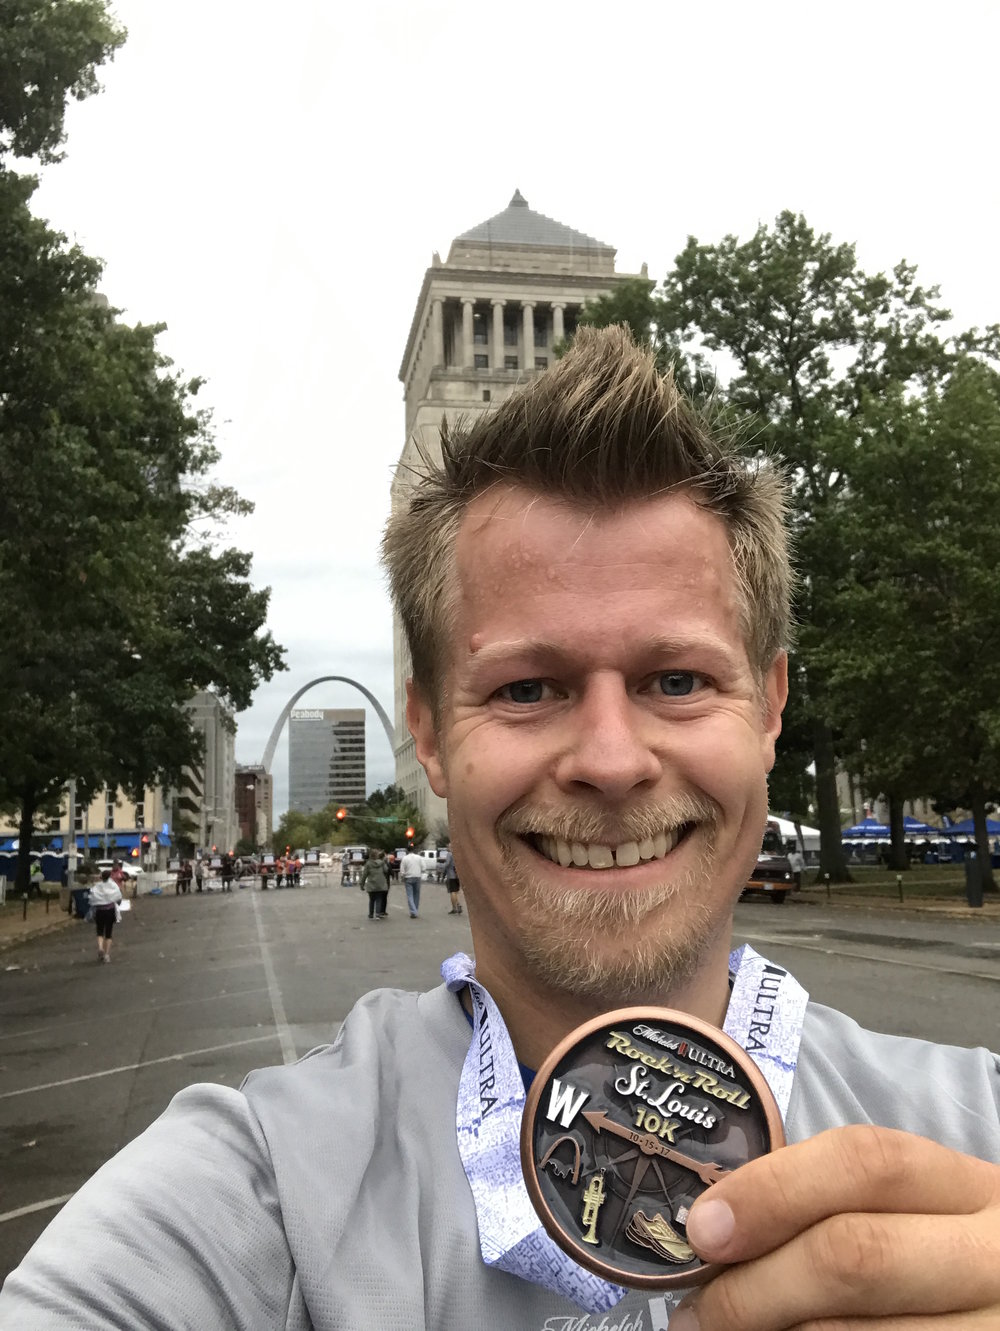 2017 St Louis Rock n' Roll 10k